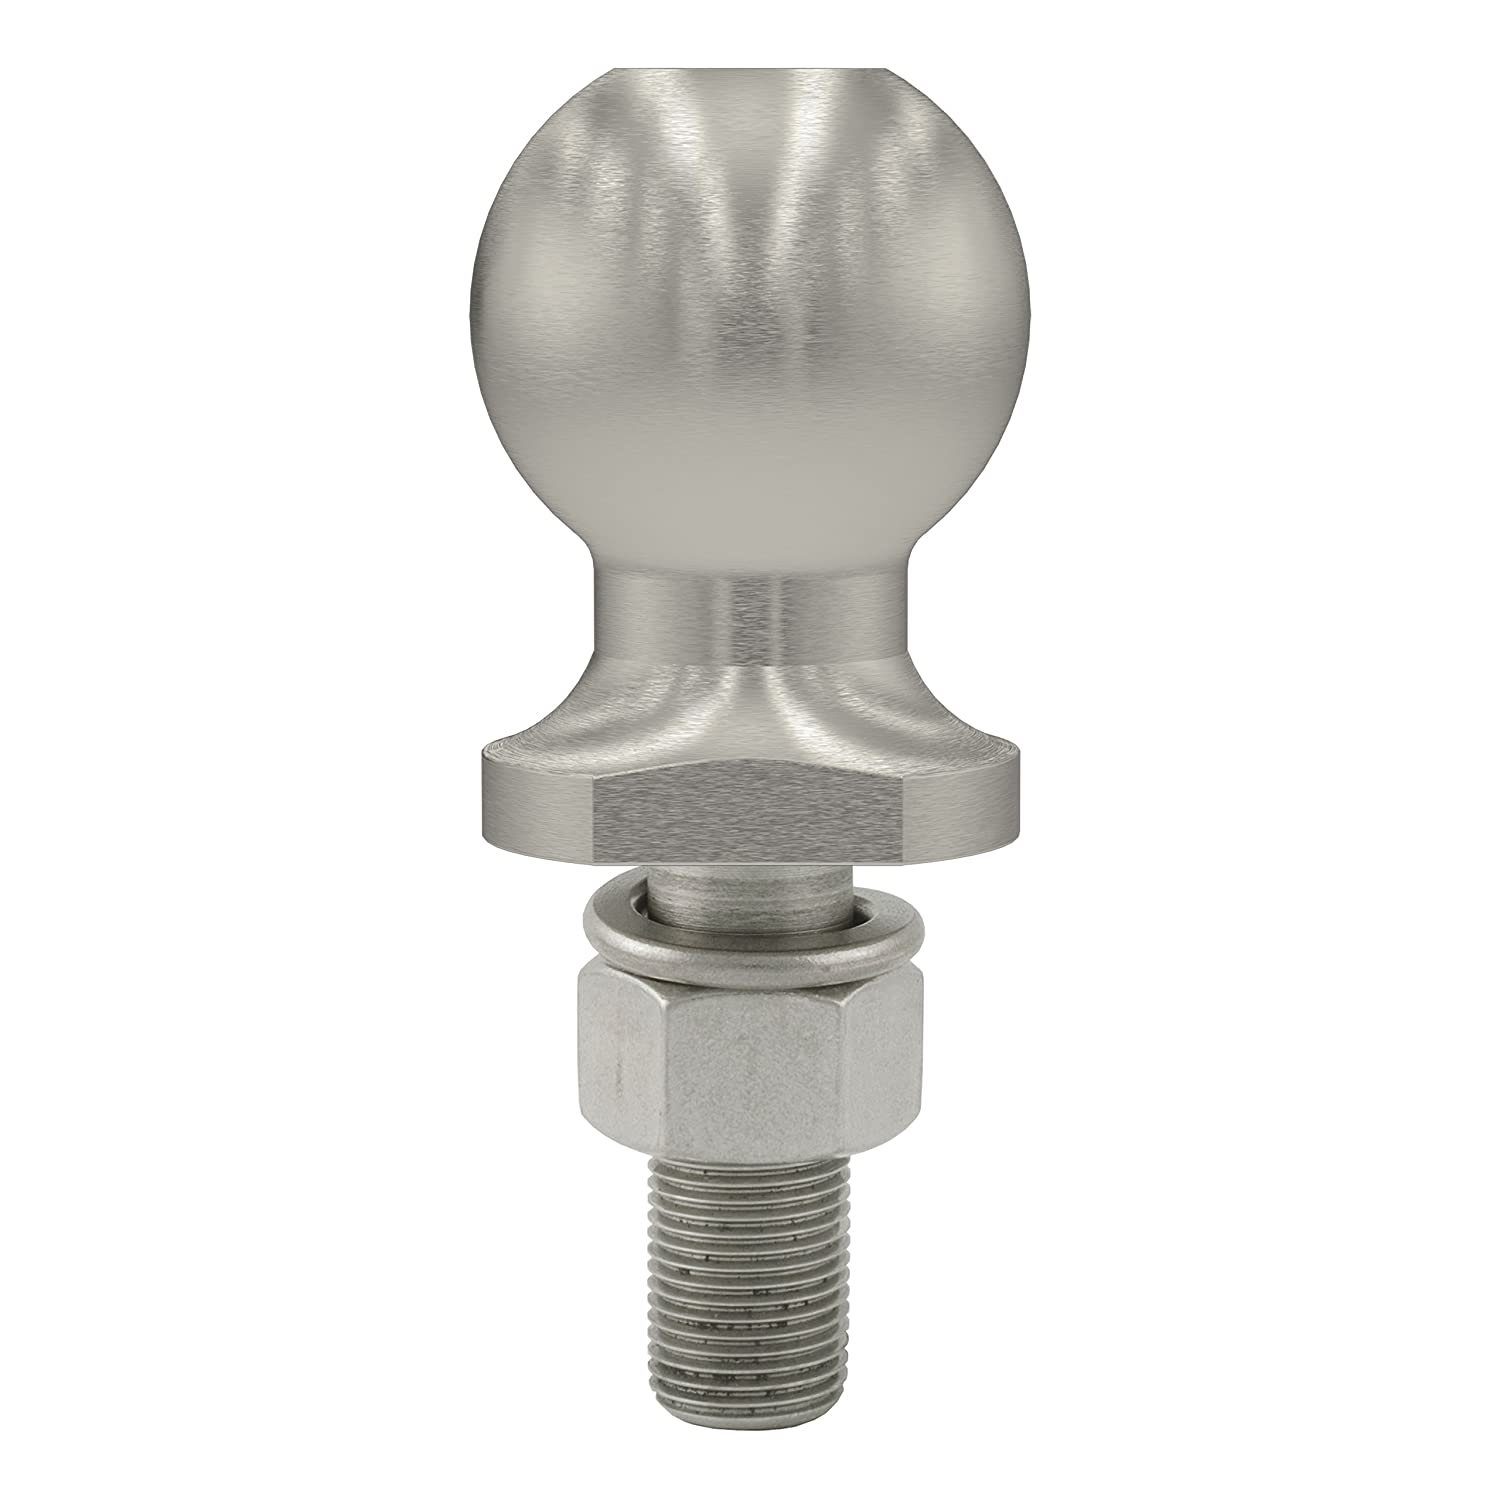 2-Inch Diameter Tow Ball with 3//4-Inch x 2-1//8-Inch Shank CURT 40052 Stainless Steel Trailer Hitch Ball 3,500 lbs.